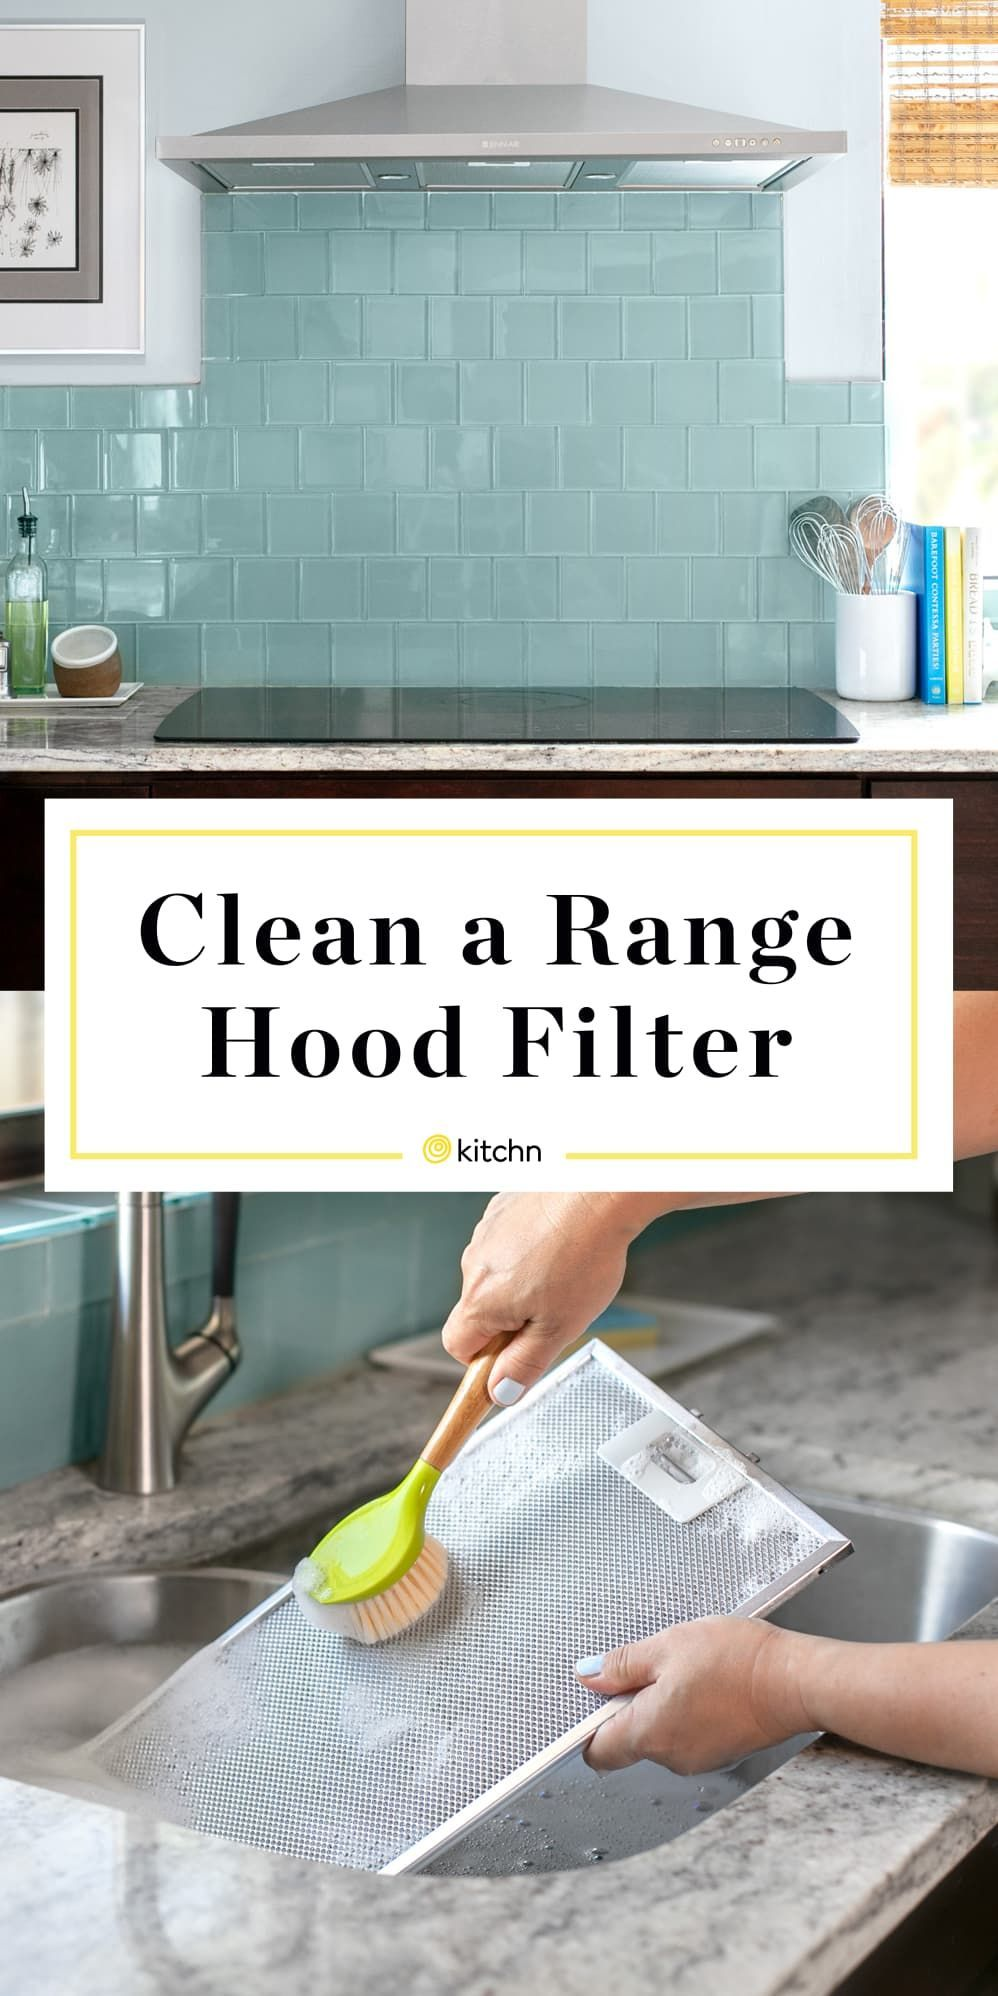 How To Clean A Greasy Range Hood Filter Kitchn Cleaning Microwave Filters How To Clean A Greasy Range Hood Filter Haushalts Tipps Reinigen Haushaltstipps